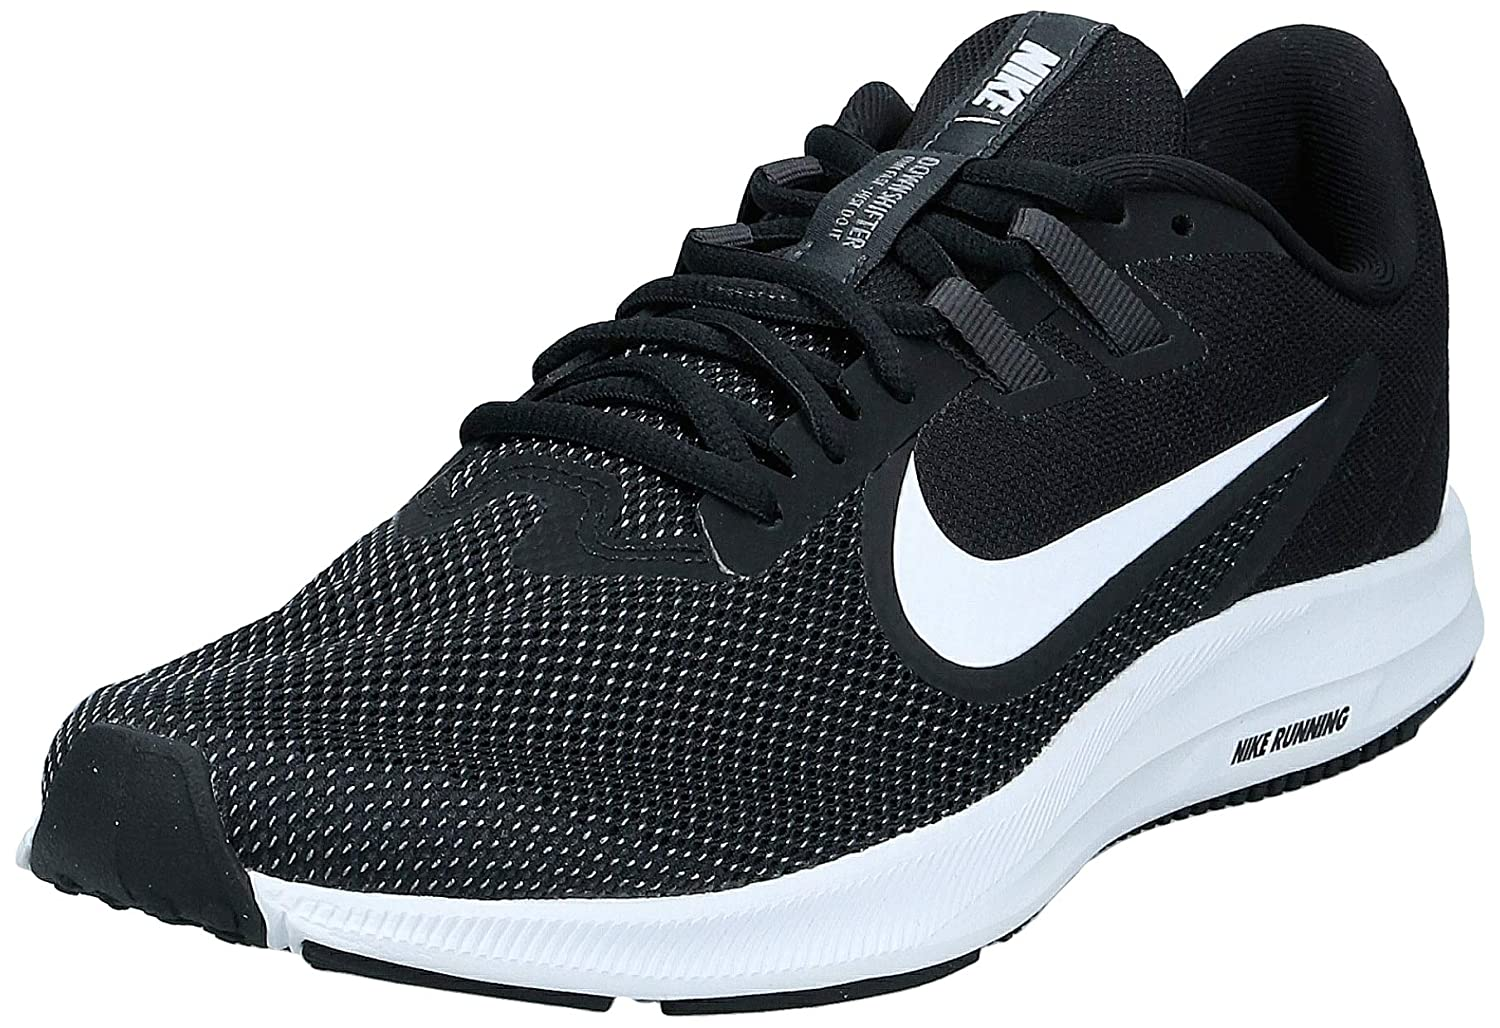 WMNS Downshifter 9 Running Shoes